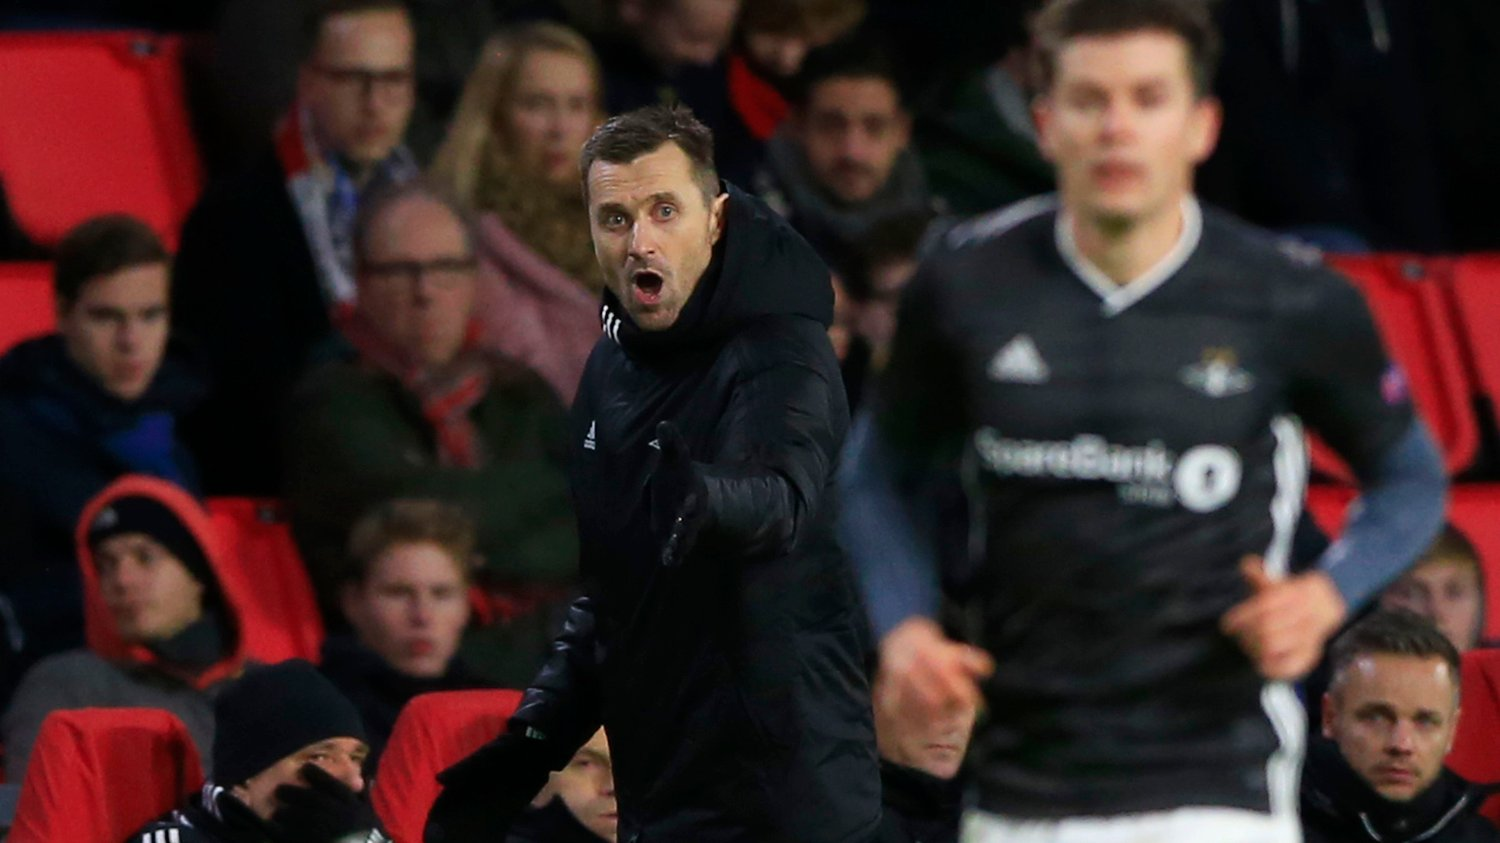 Rosenborg's head coach Eirik Horneland shouts directions to his team during the group D Europa League soccer match between PSV and Rosenborg at the Philips stadium in Eindhoven, Netherlands, Thursday, Dec. 12, 2019.